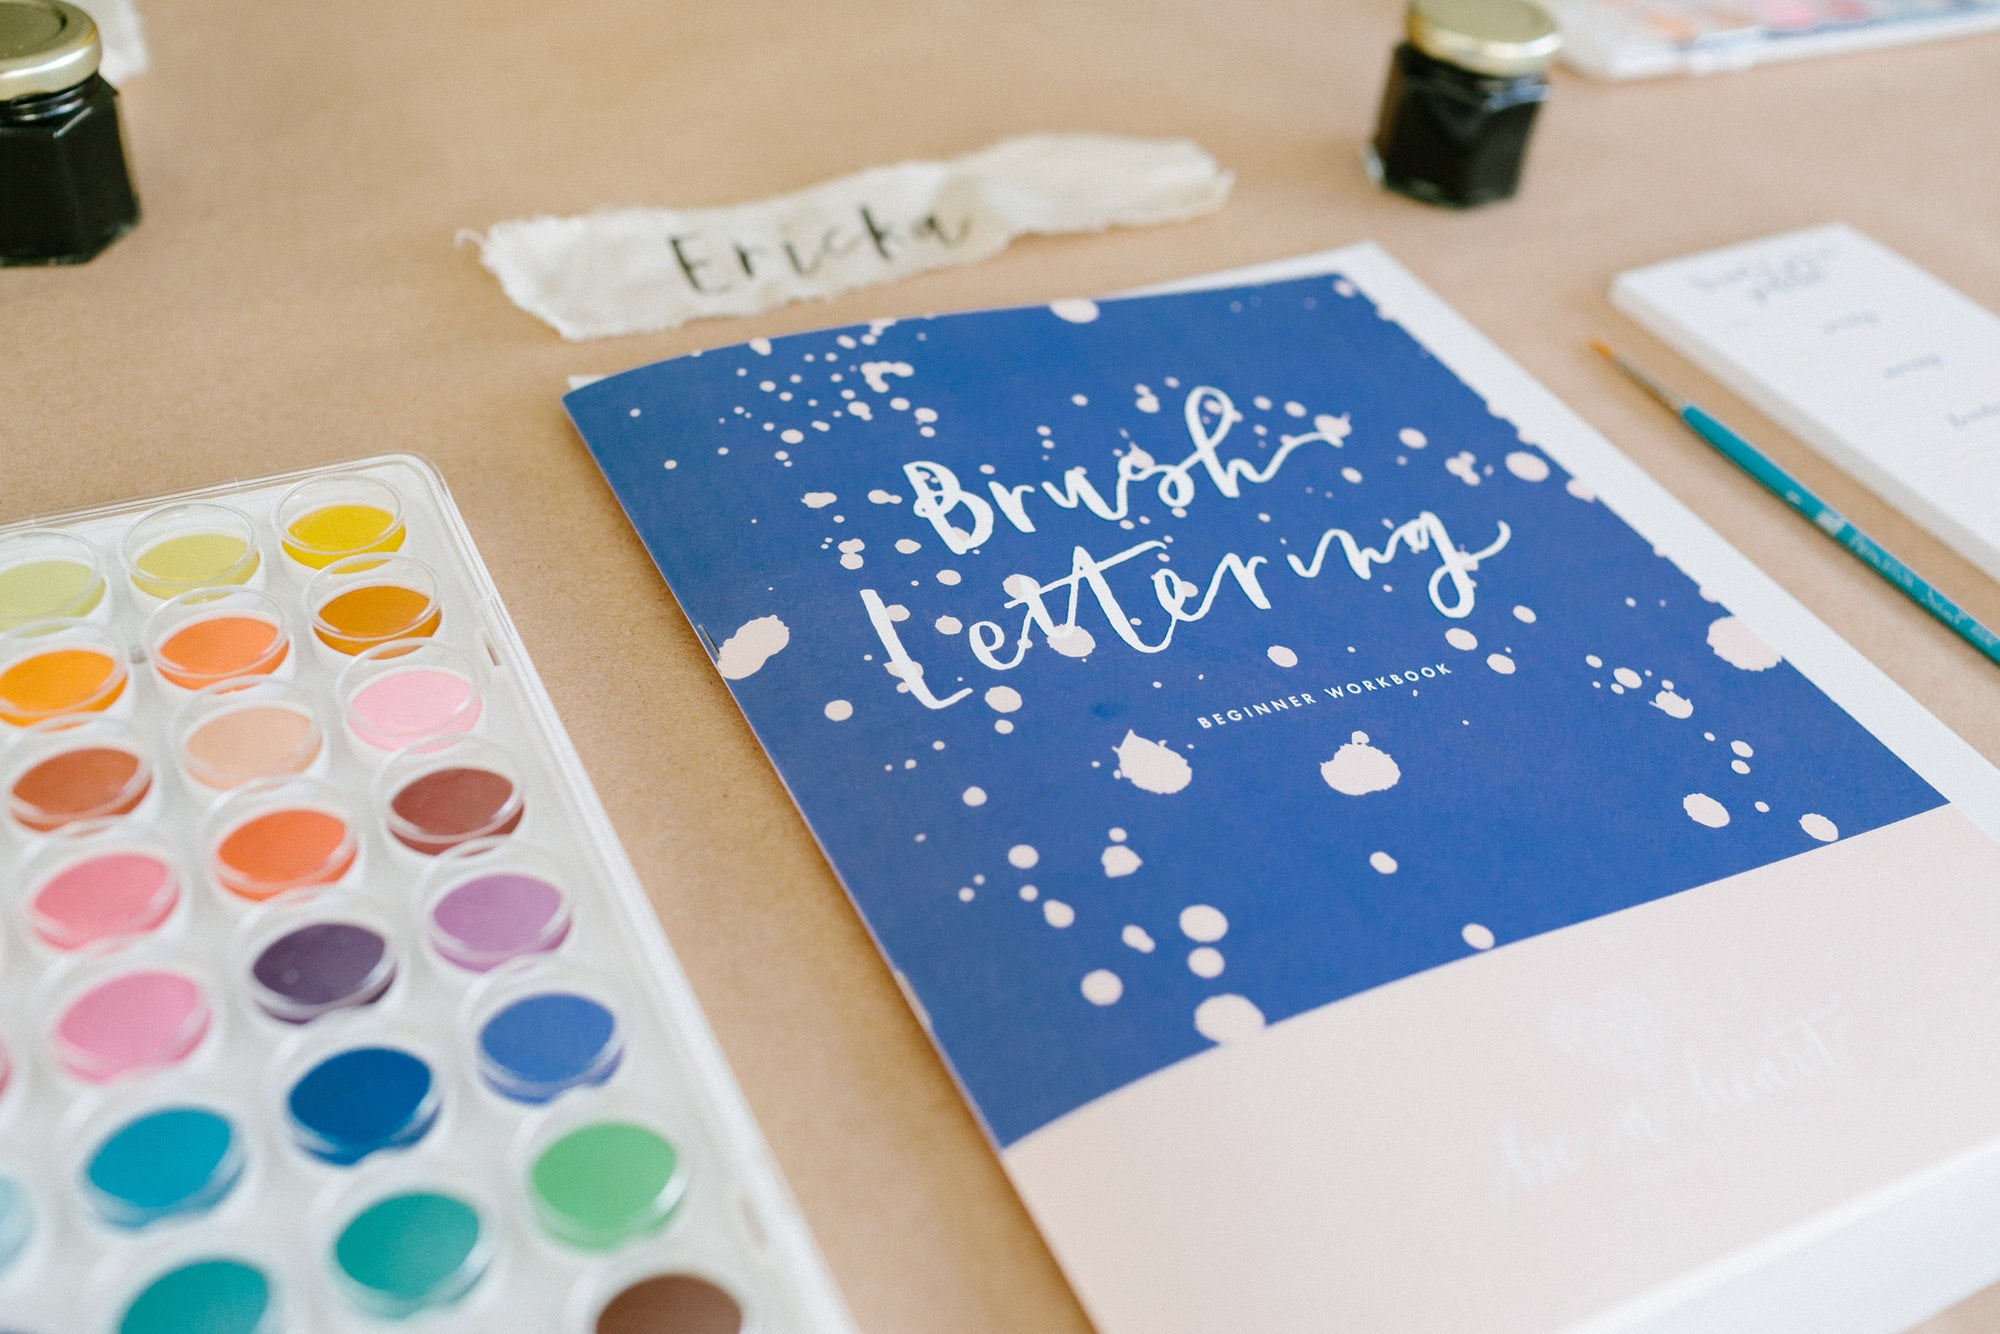 Beginner Brush Lettering Class at Makers Mess